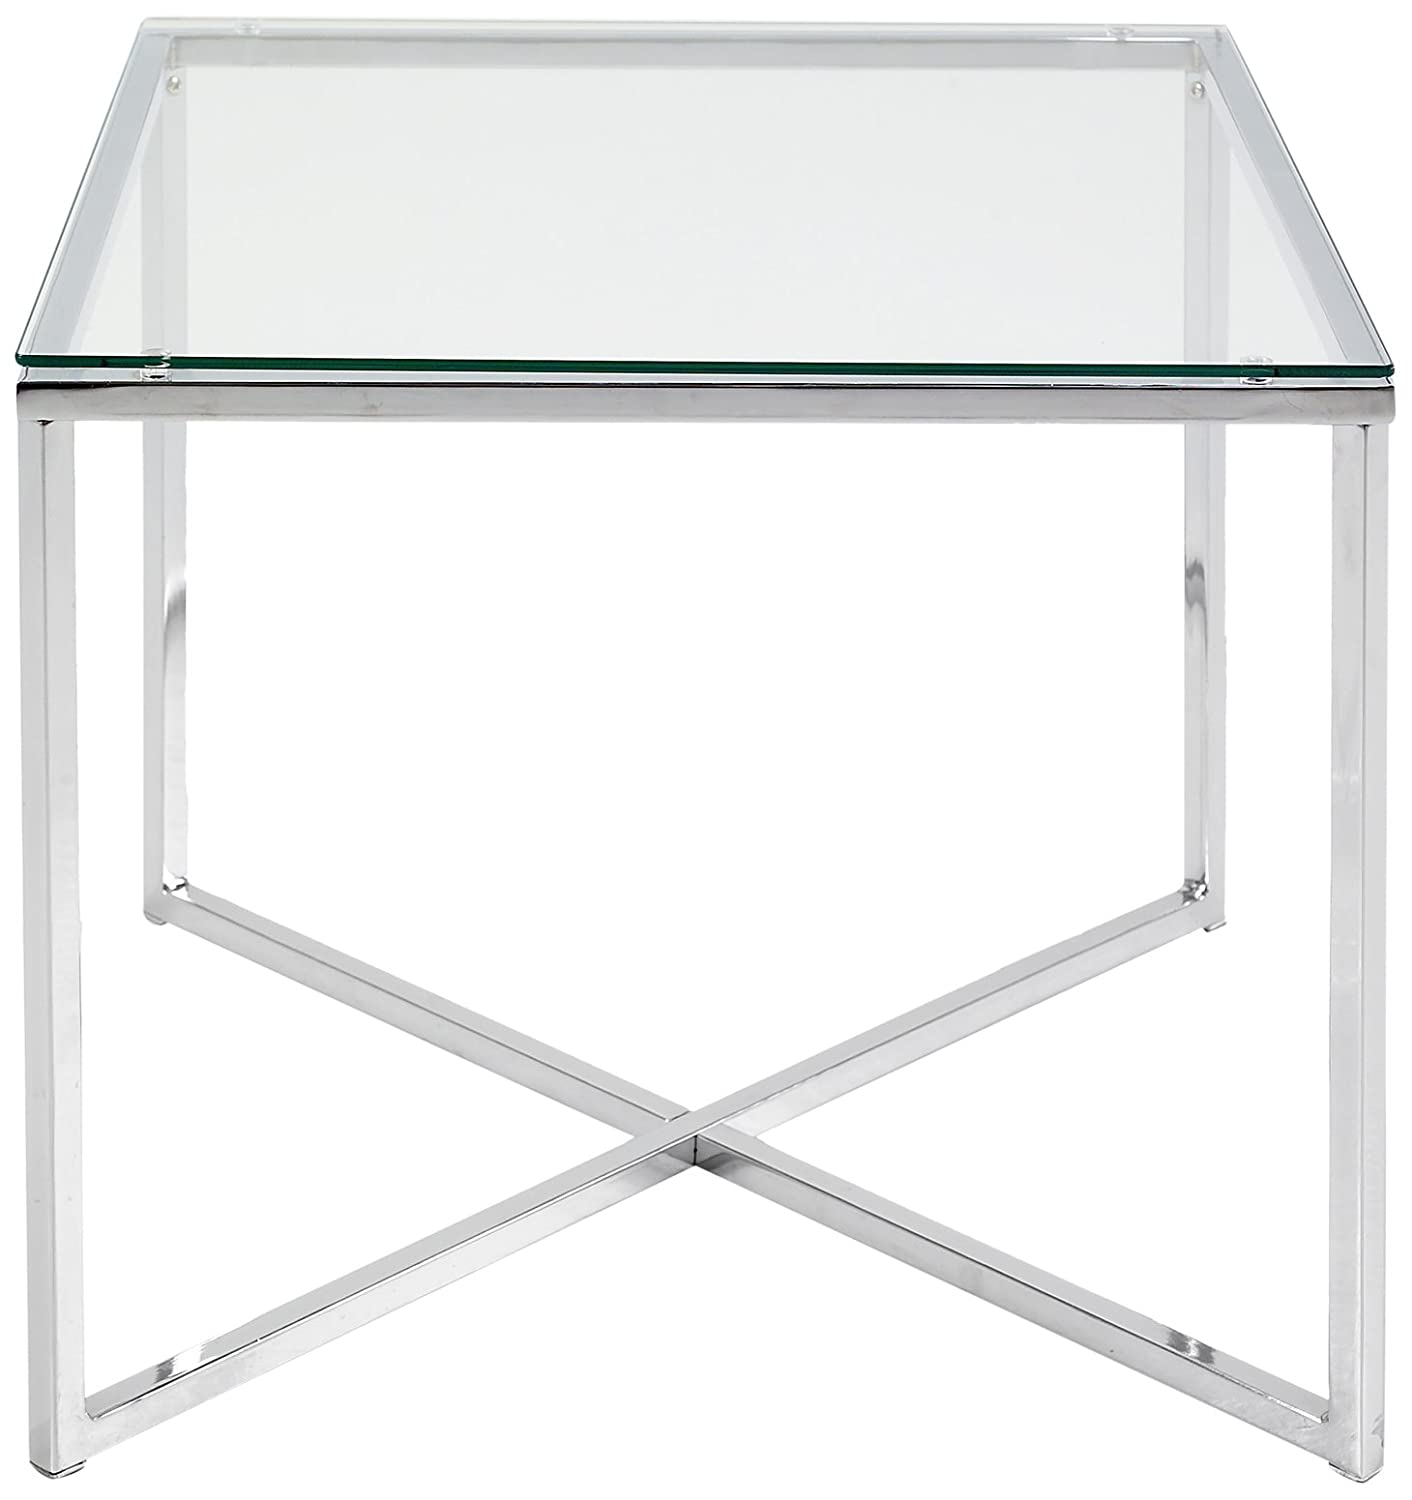 ABC Home Scandinavian Style Chrome Lamp Table, Silver ABC designs 0426862045